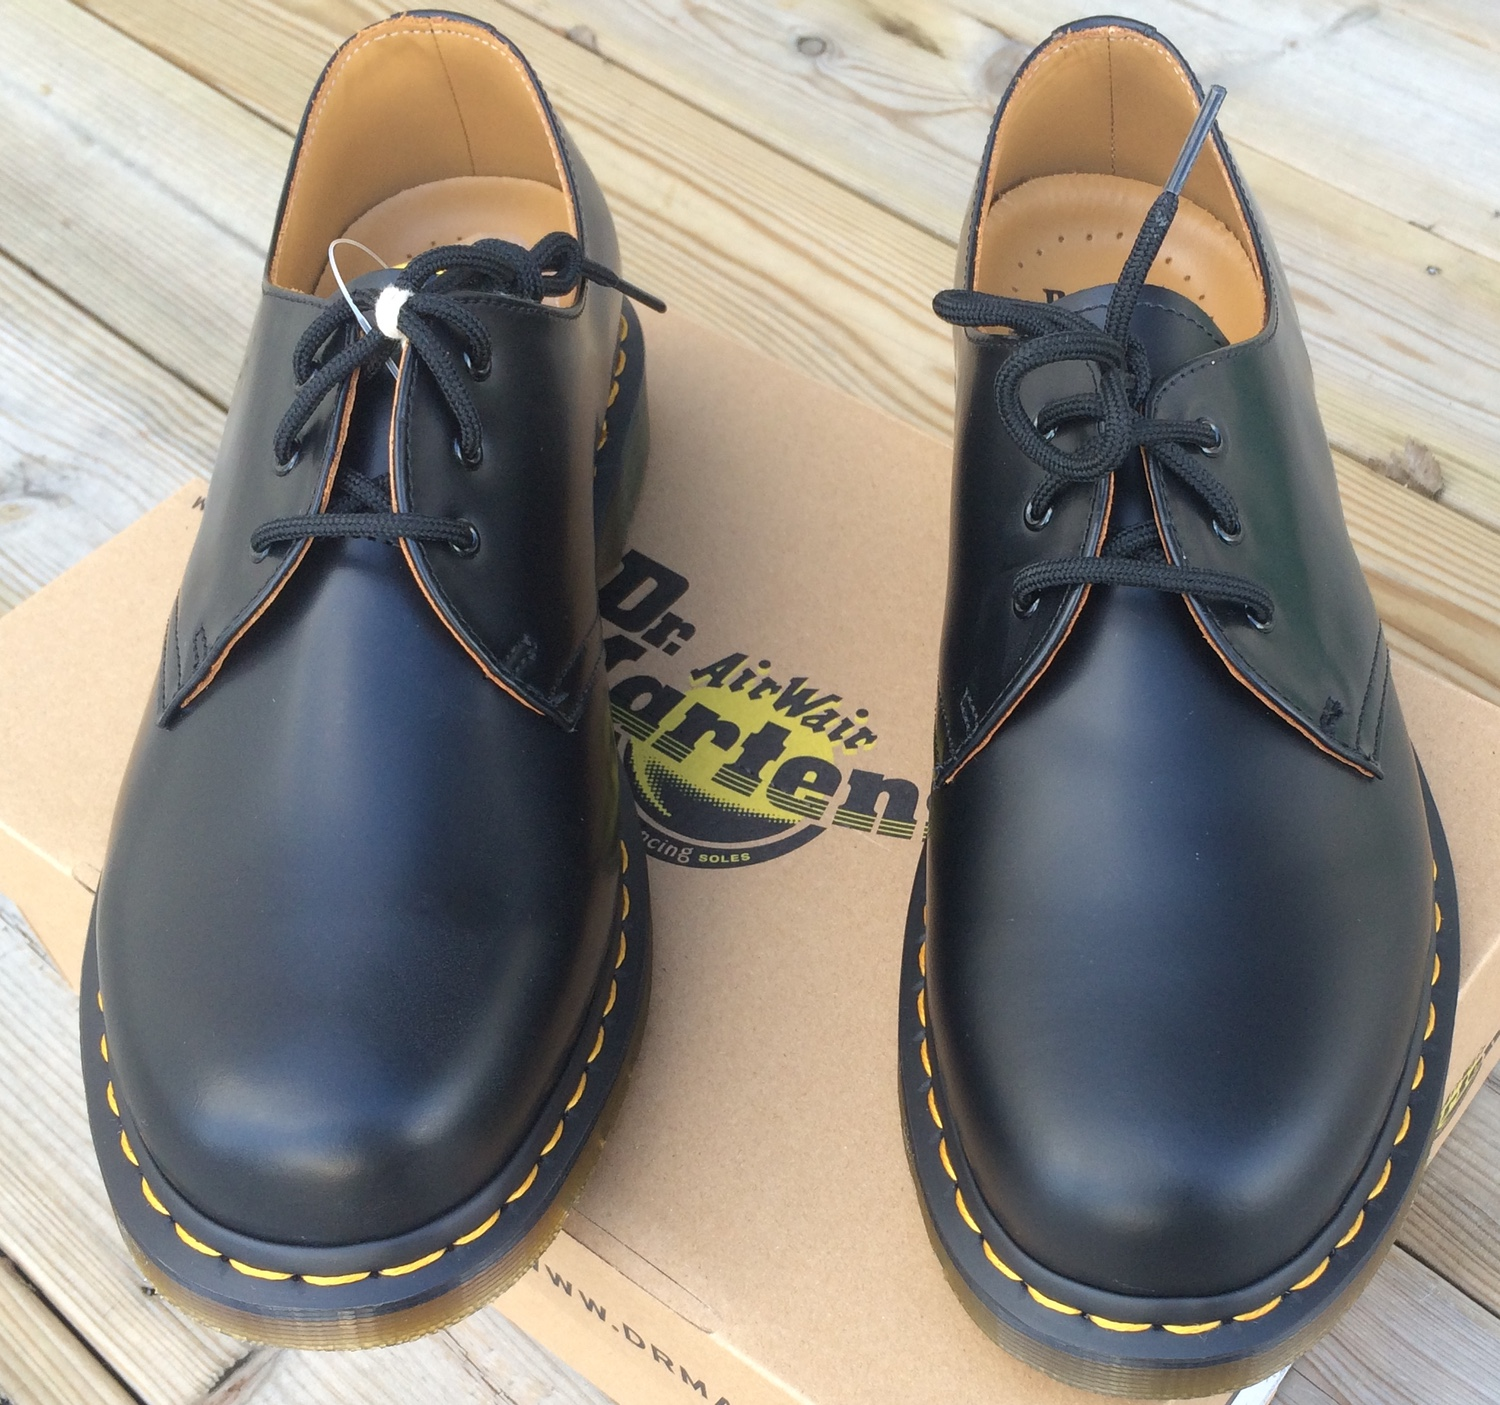 5a395bb54e55 Update on the Dr Martens split sole consumer activist problem